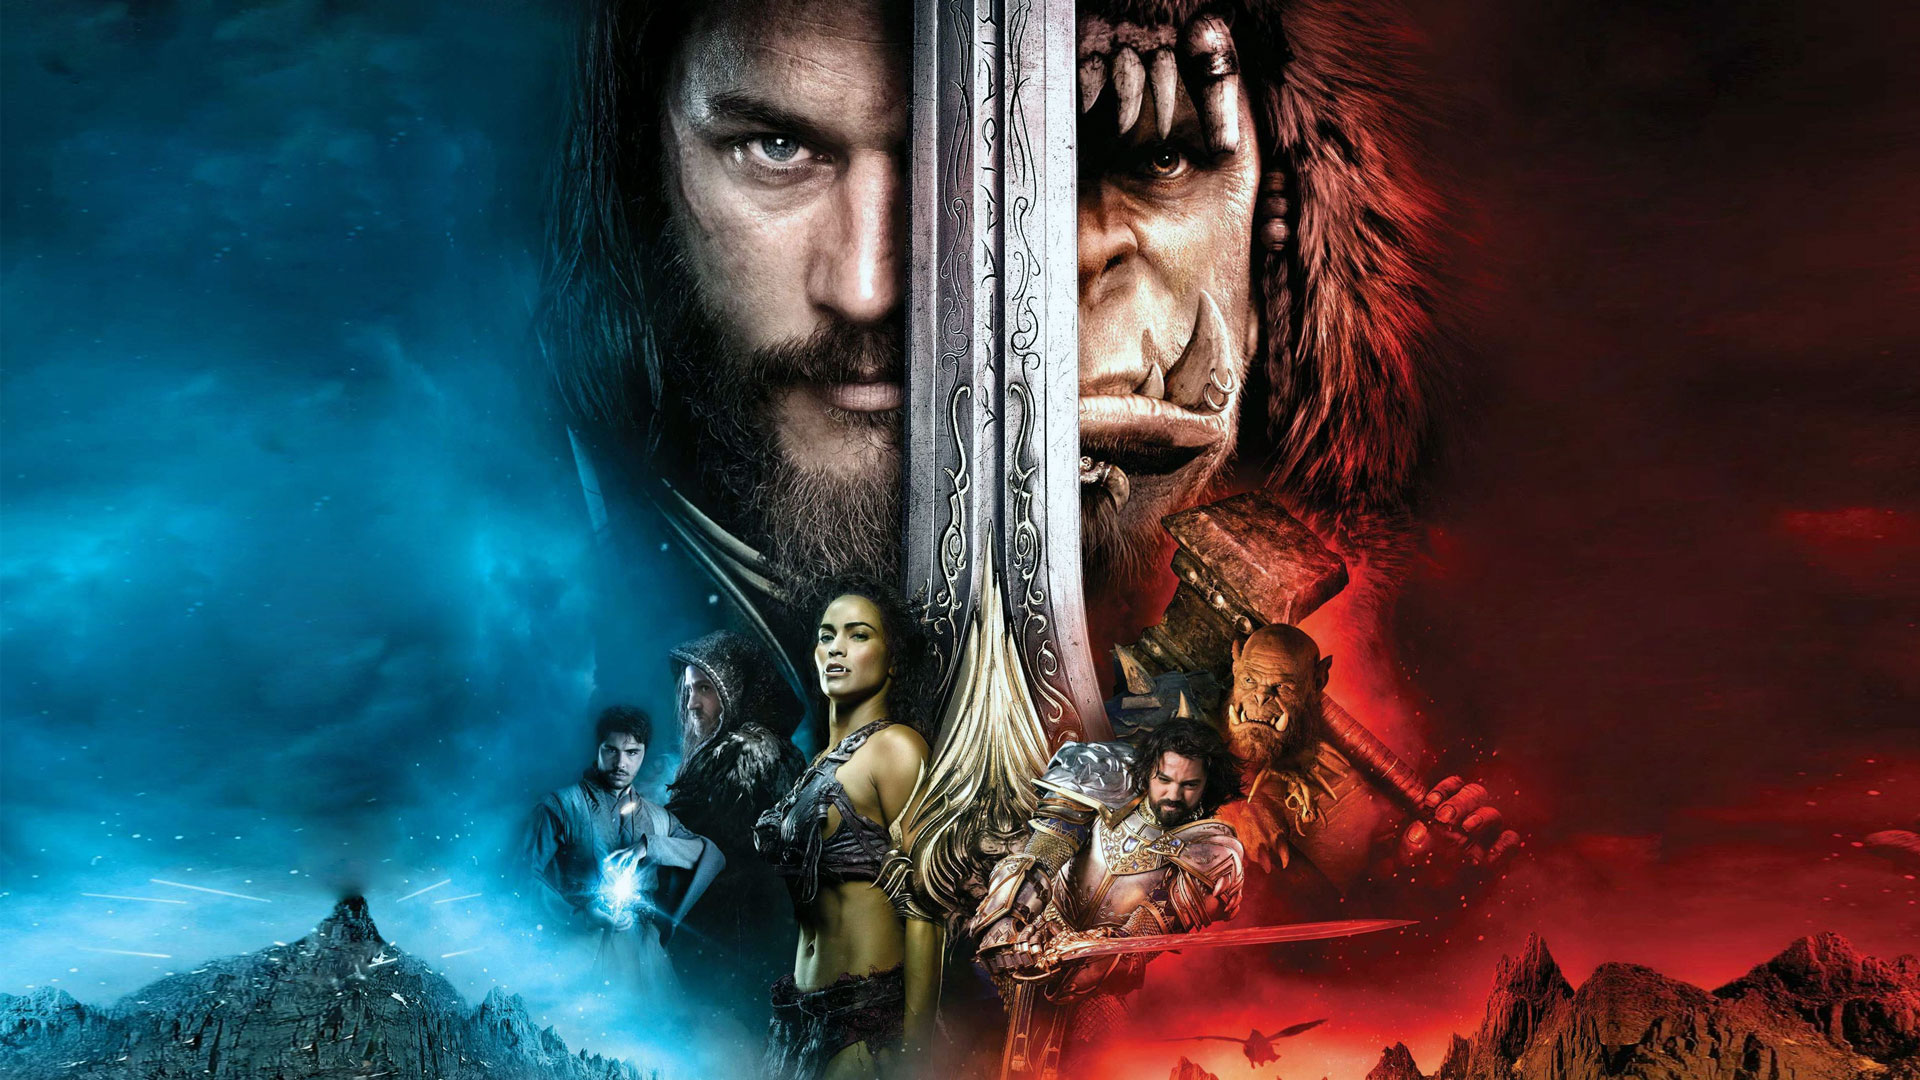 warcraft 2016 movie review